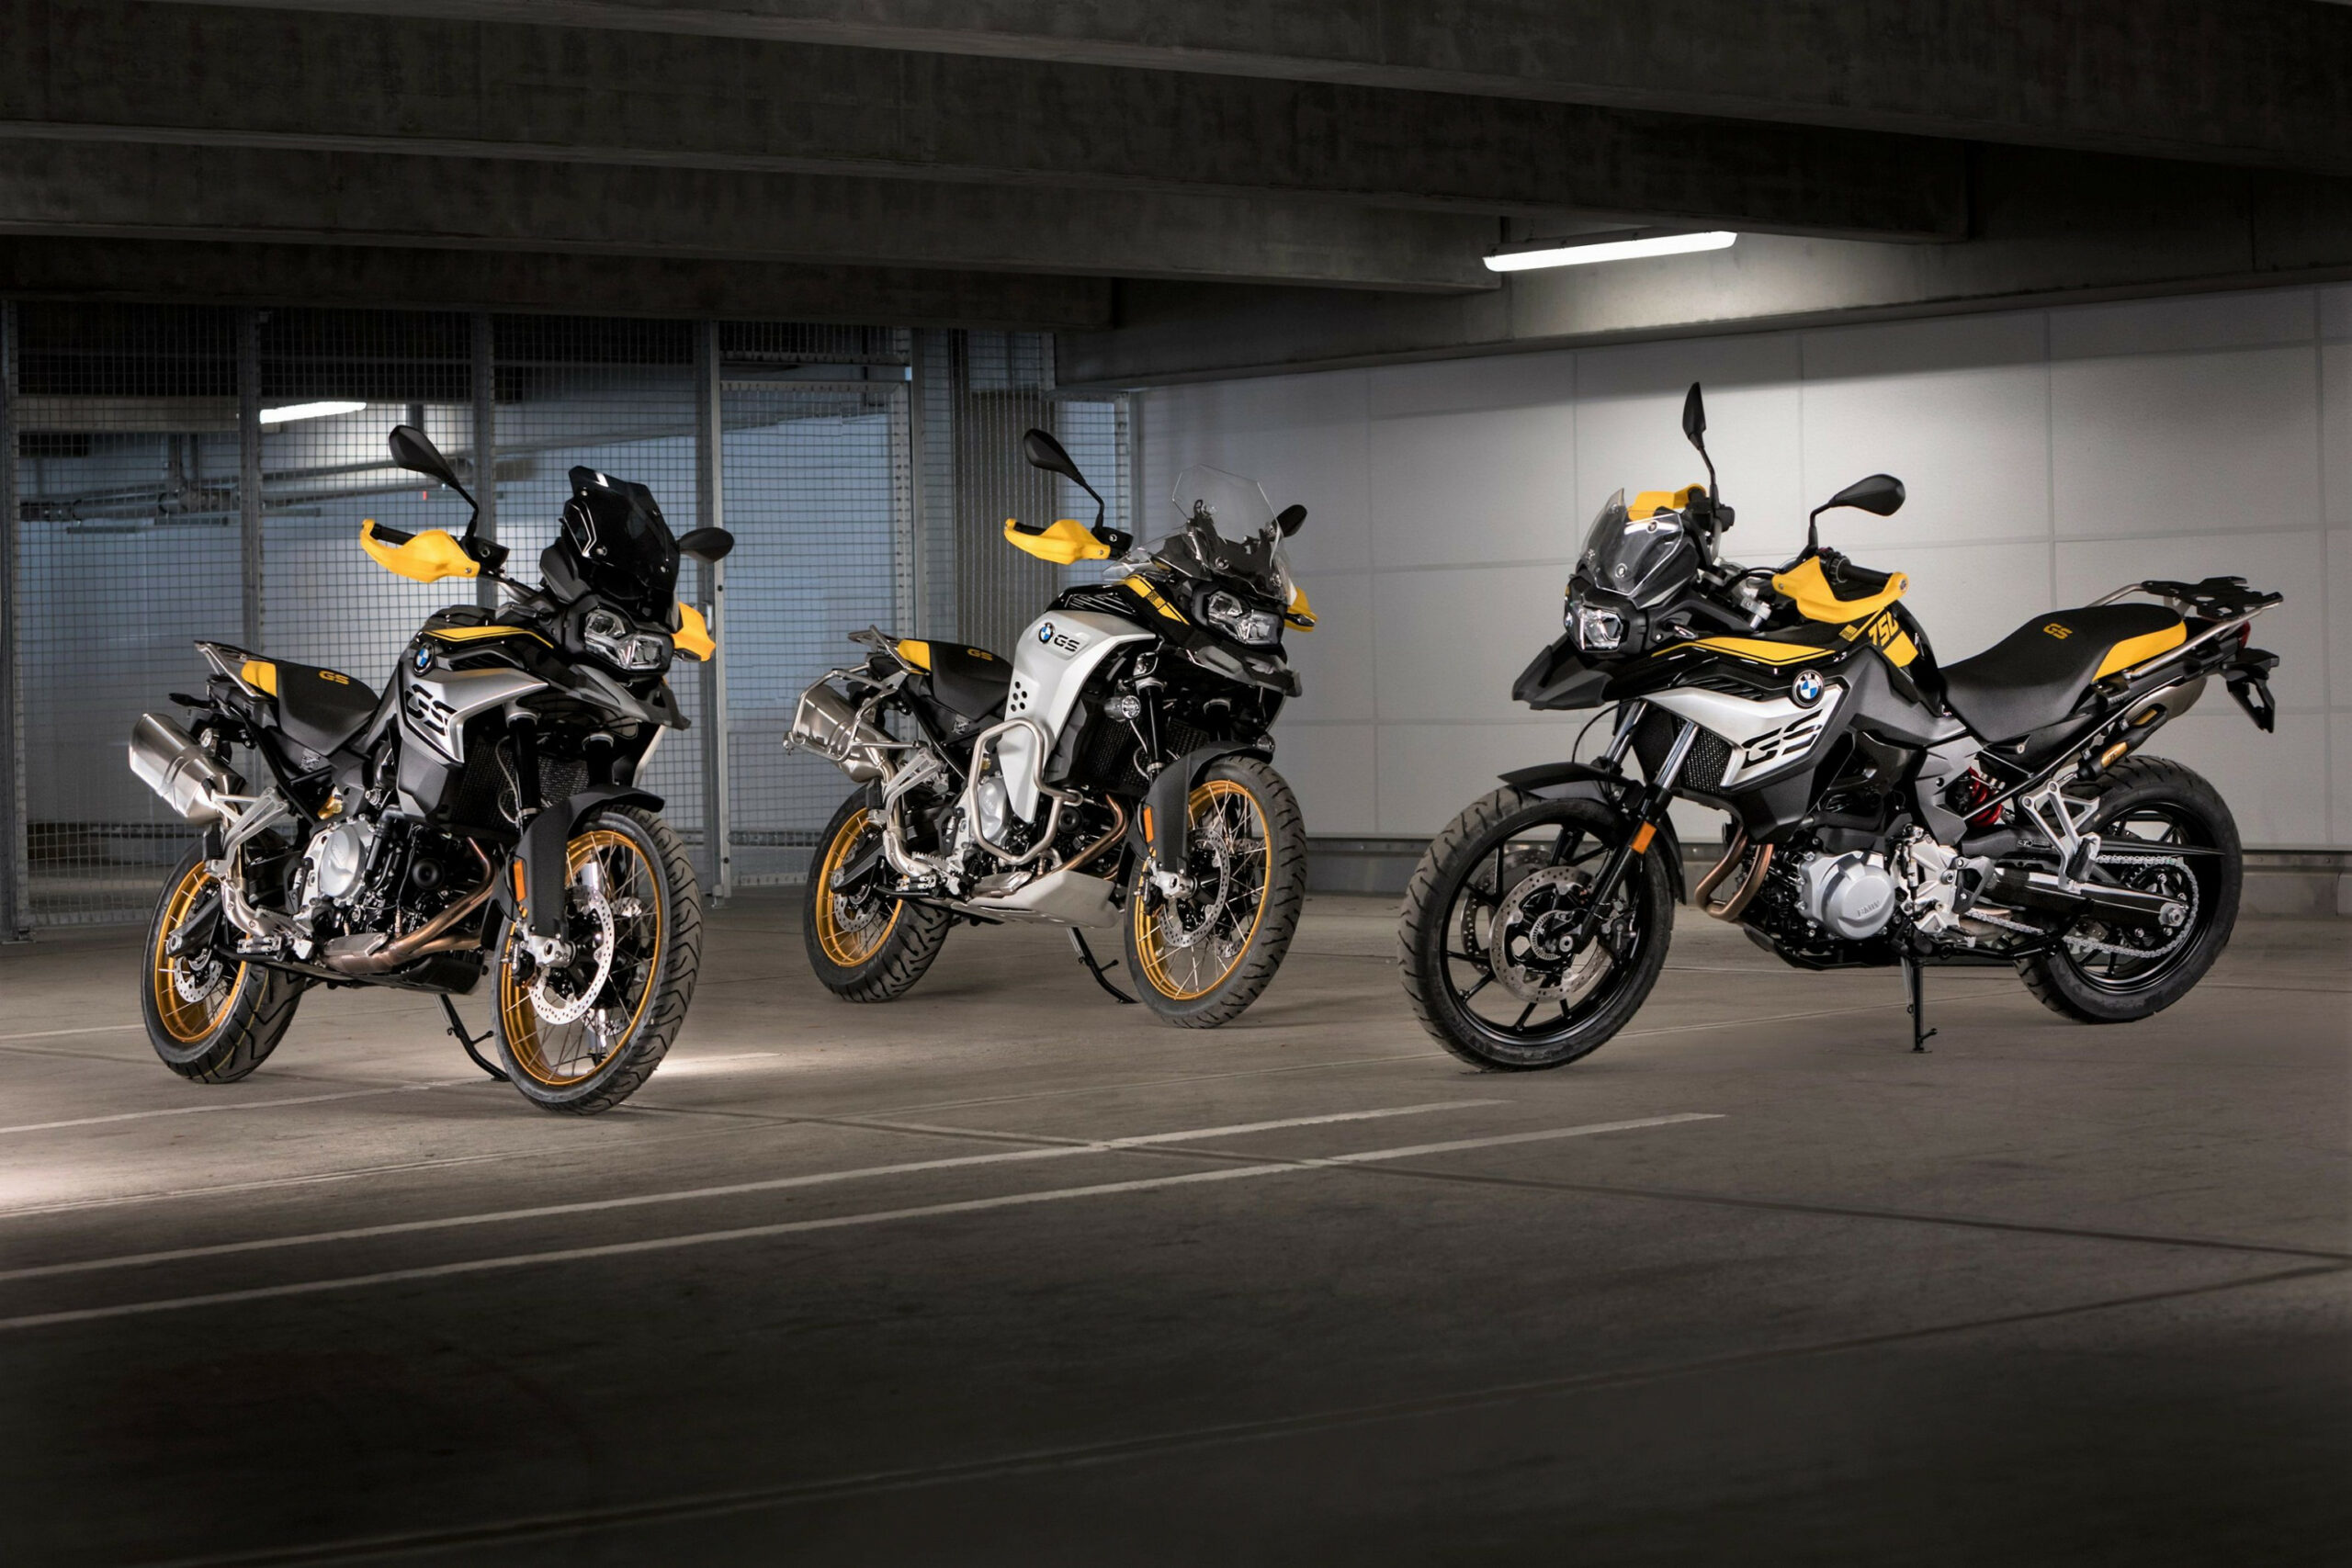 Pricing BMW Gs Adventure 2022